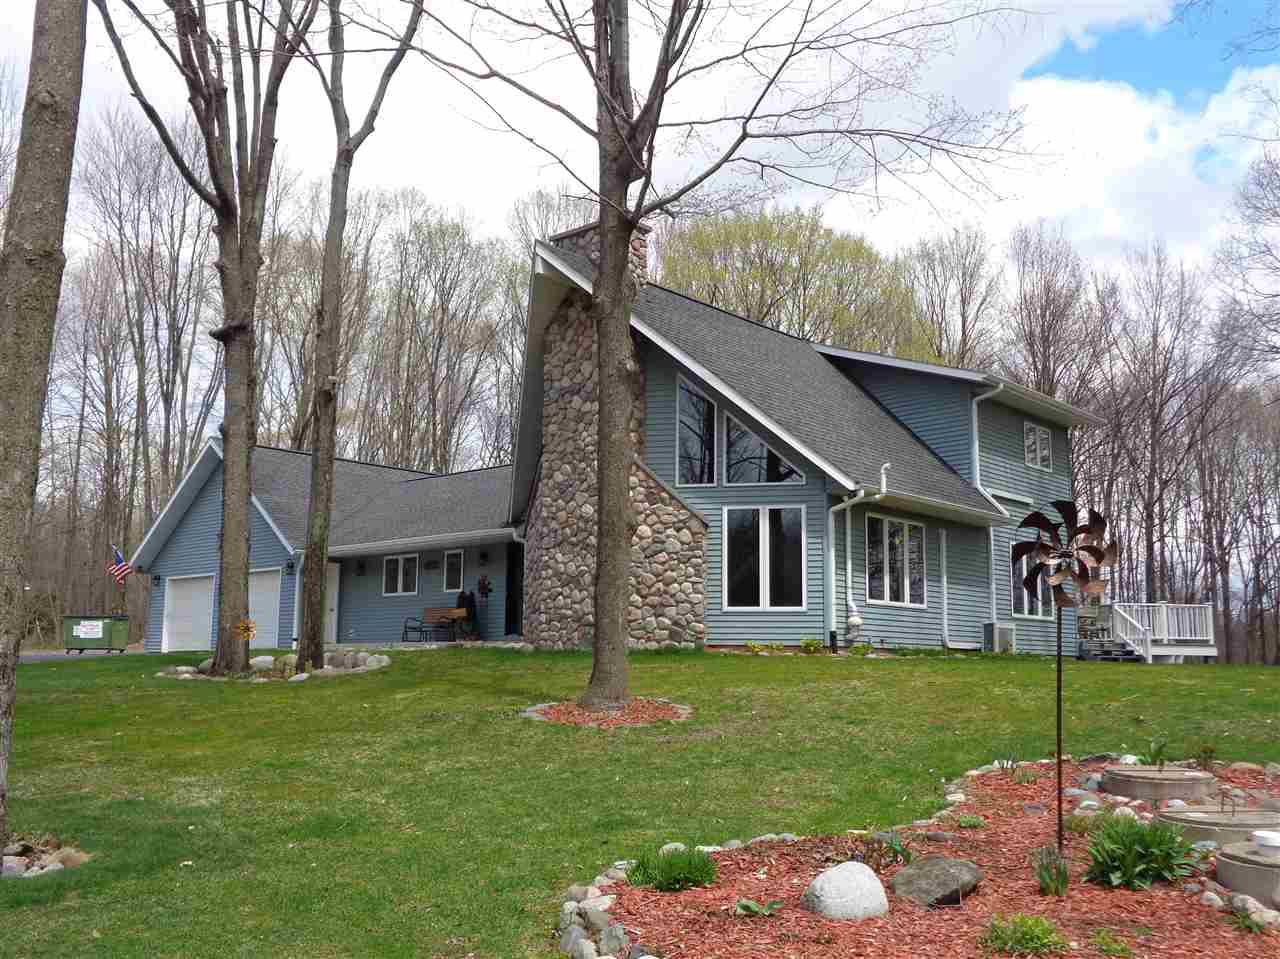 Exceptional 4 bedroom, 3.5 bathroom home only one mile from Medford on +/- 5.01 wooded acres with frontage on the Black River. Home features a secluded location on a dead end road, vaulted ceilings, wood burning fireplace, large updated kitchen with center island and hardwood flooring, walk-out basement with family room, theater room, bonus room and wet bar. Main floor master suite, main floor laundry, huge wrap around deck overlooking the Black River, heated attached garage, new 16x52 storage shed with power, RV pad and a large detached garage with heated workshop.